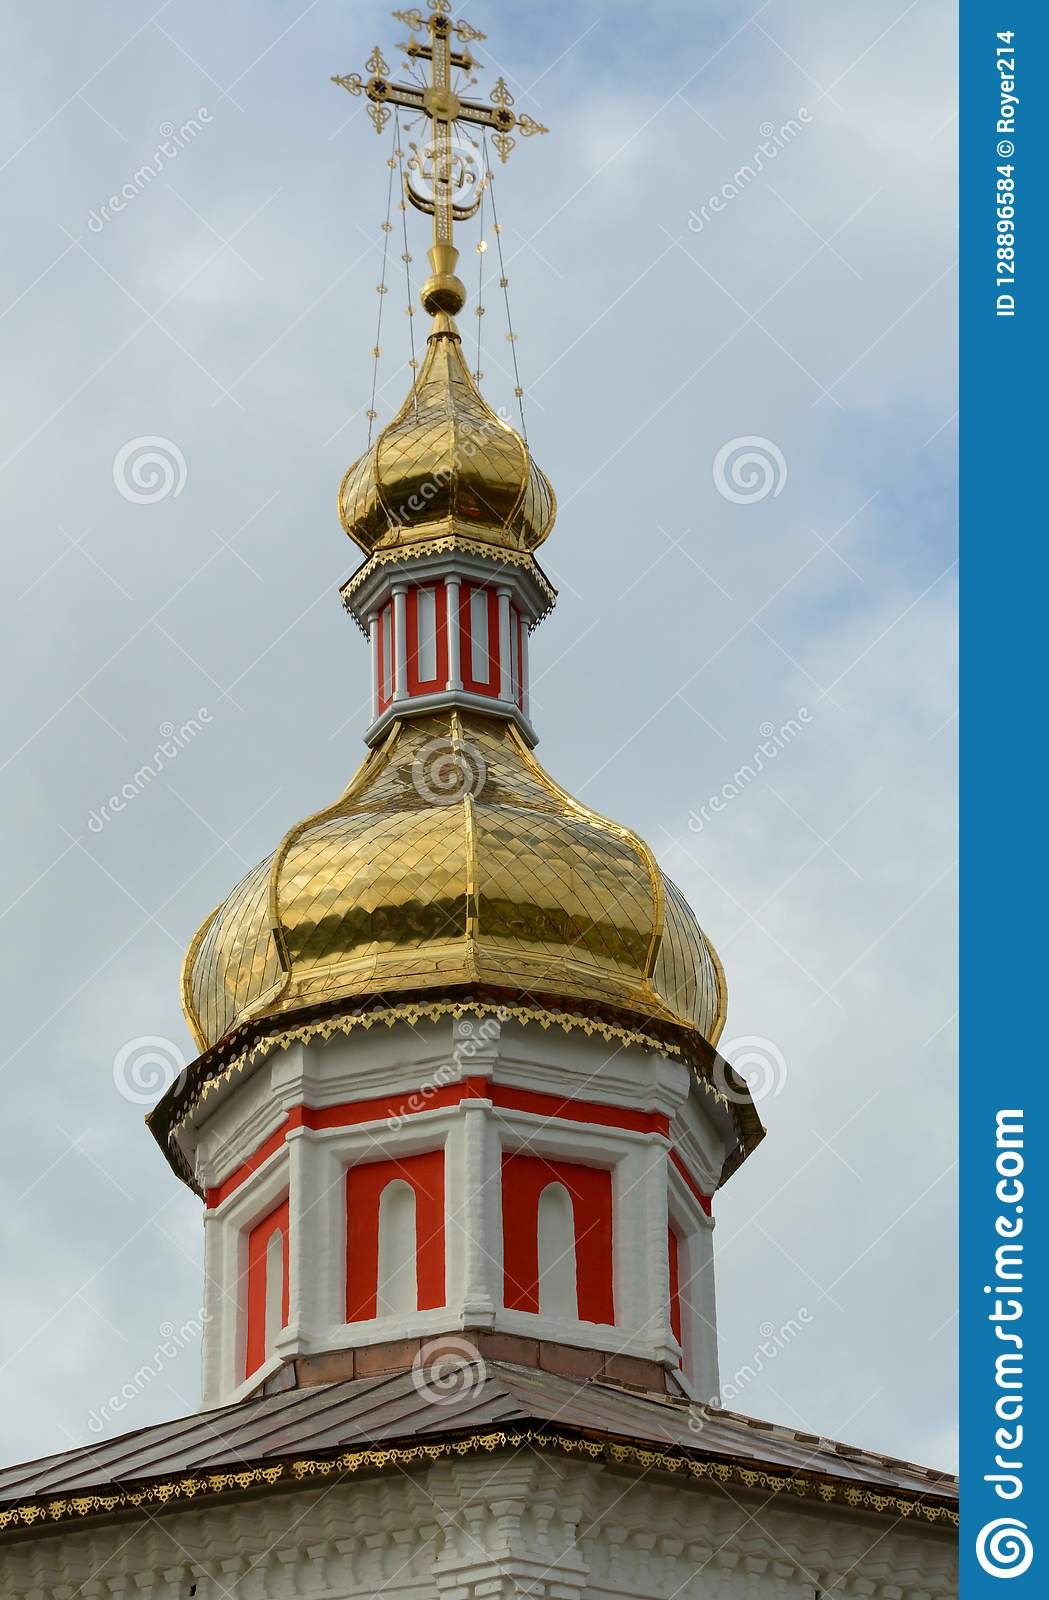 Dome of the Church in Suzdal Town